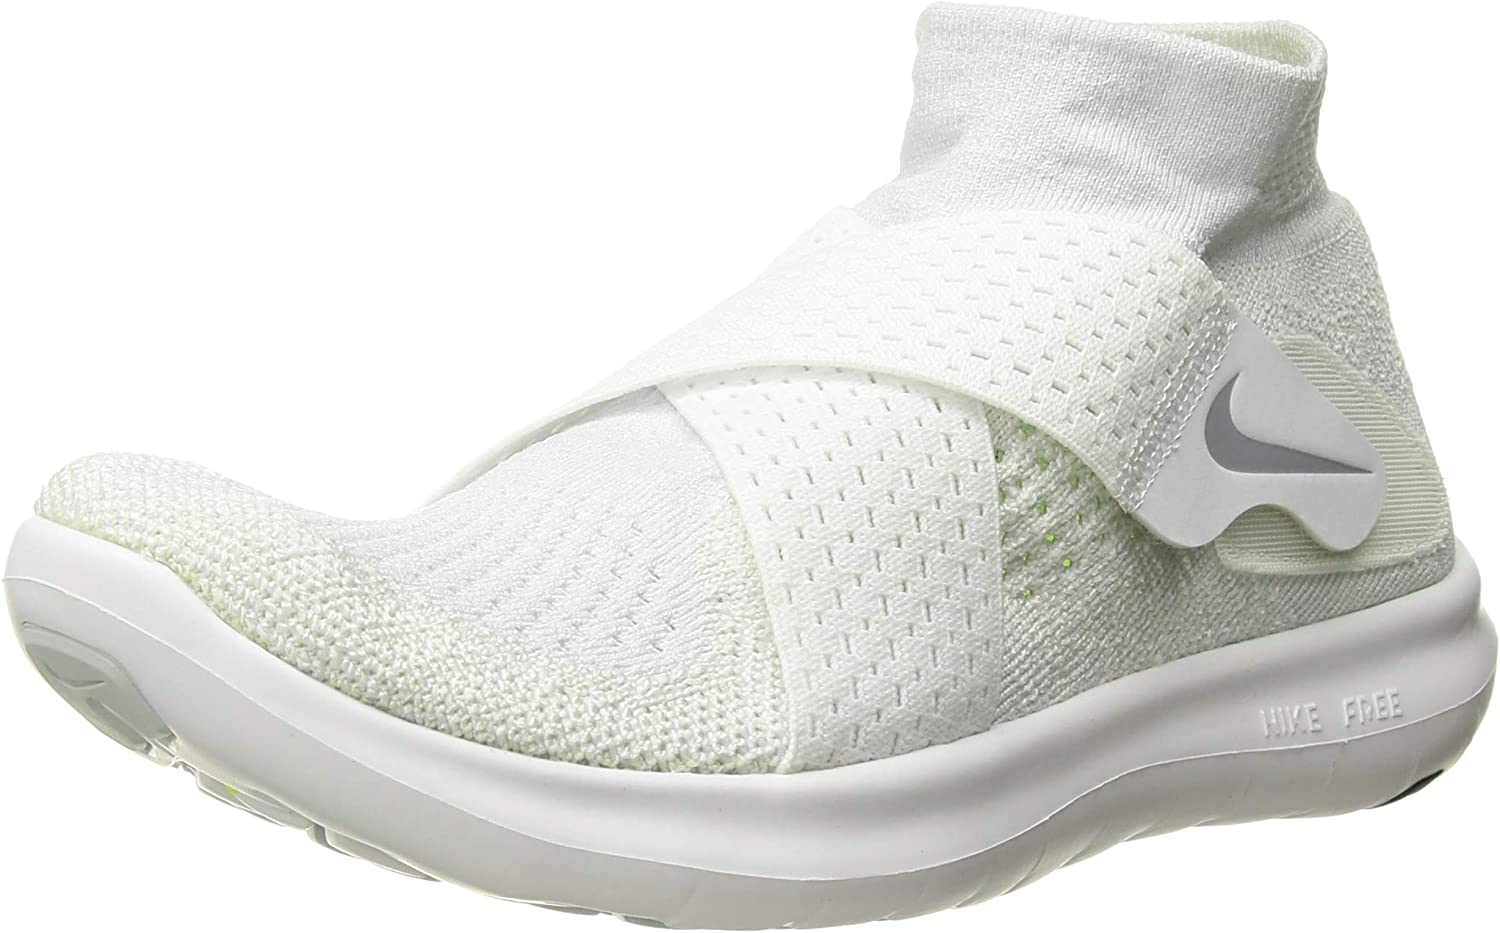 Nike Women s Free RN Motion Flyknit 2017 Running Shoe White Wolf Grey-Pure Platinum-Volt 7.5